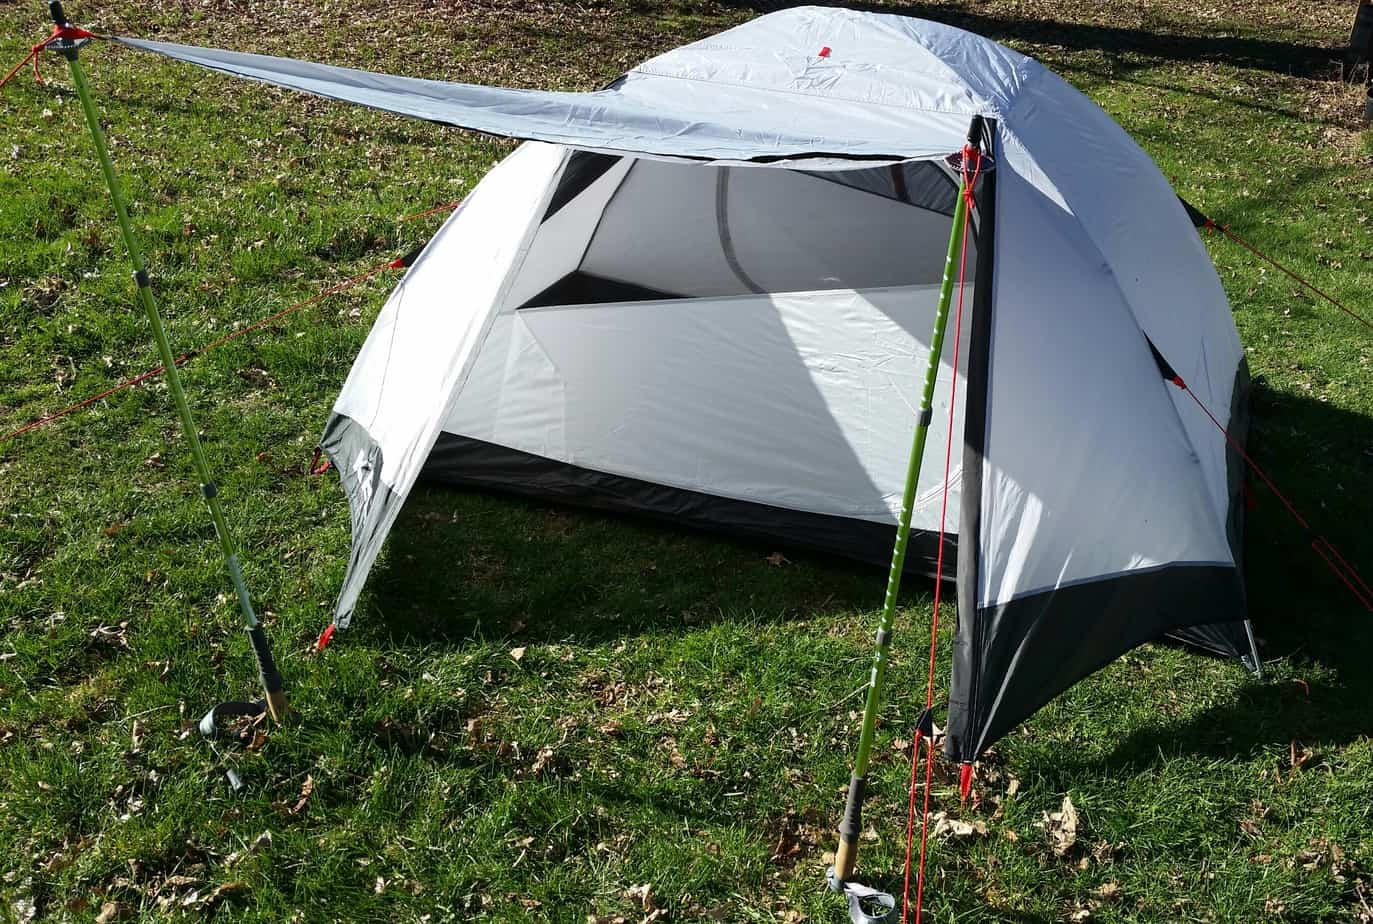 Kelty Gunnison 2 & Redesigned Kelty Gunnison 2 Tent u2013 First Look | Must Go Camping